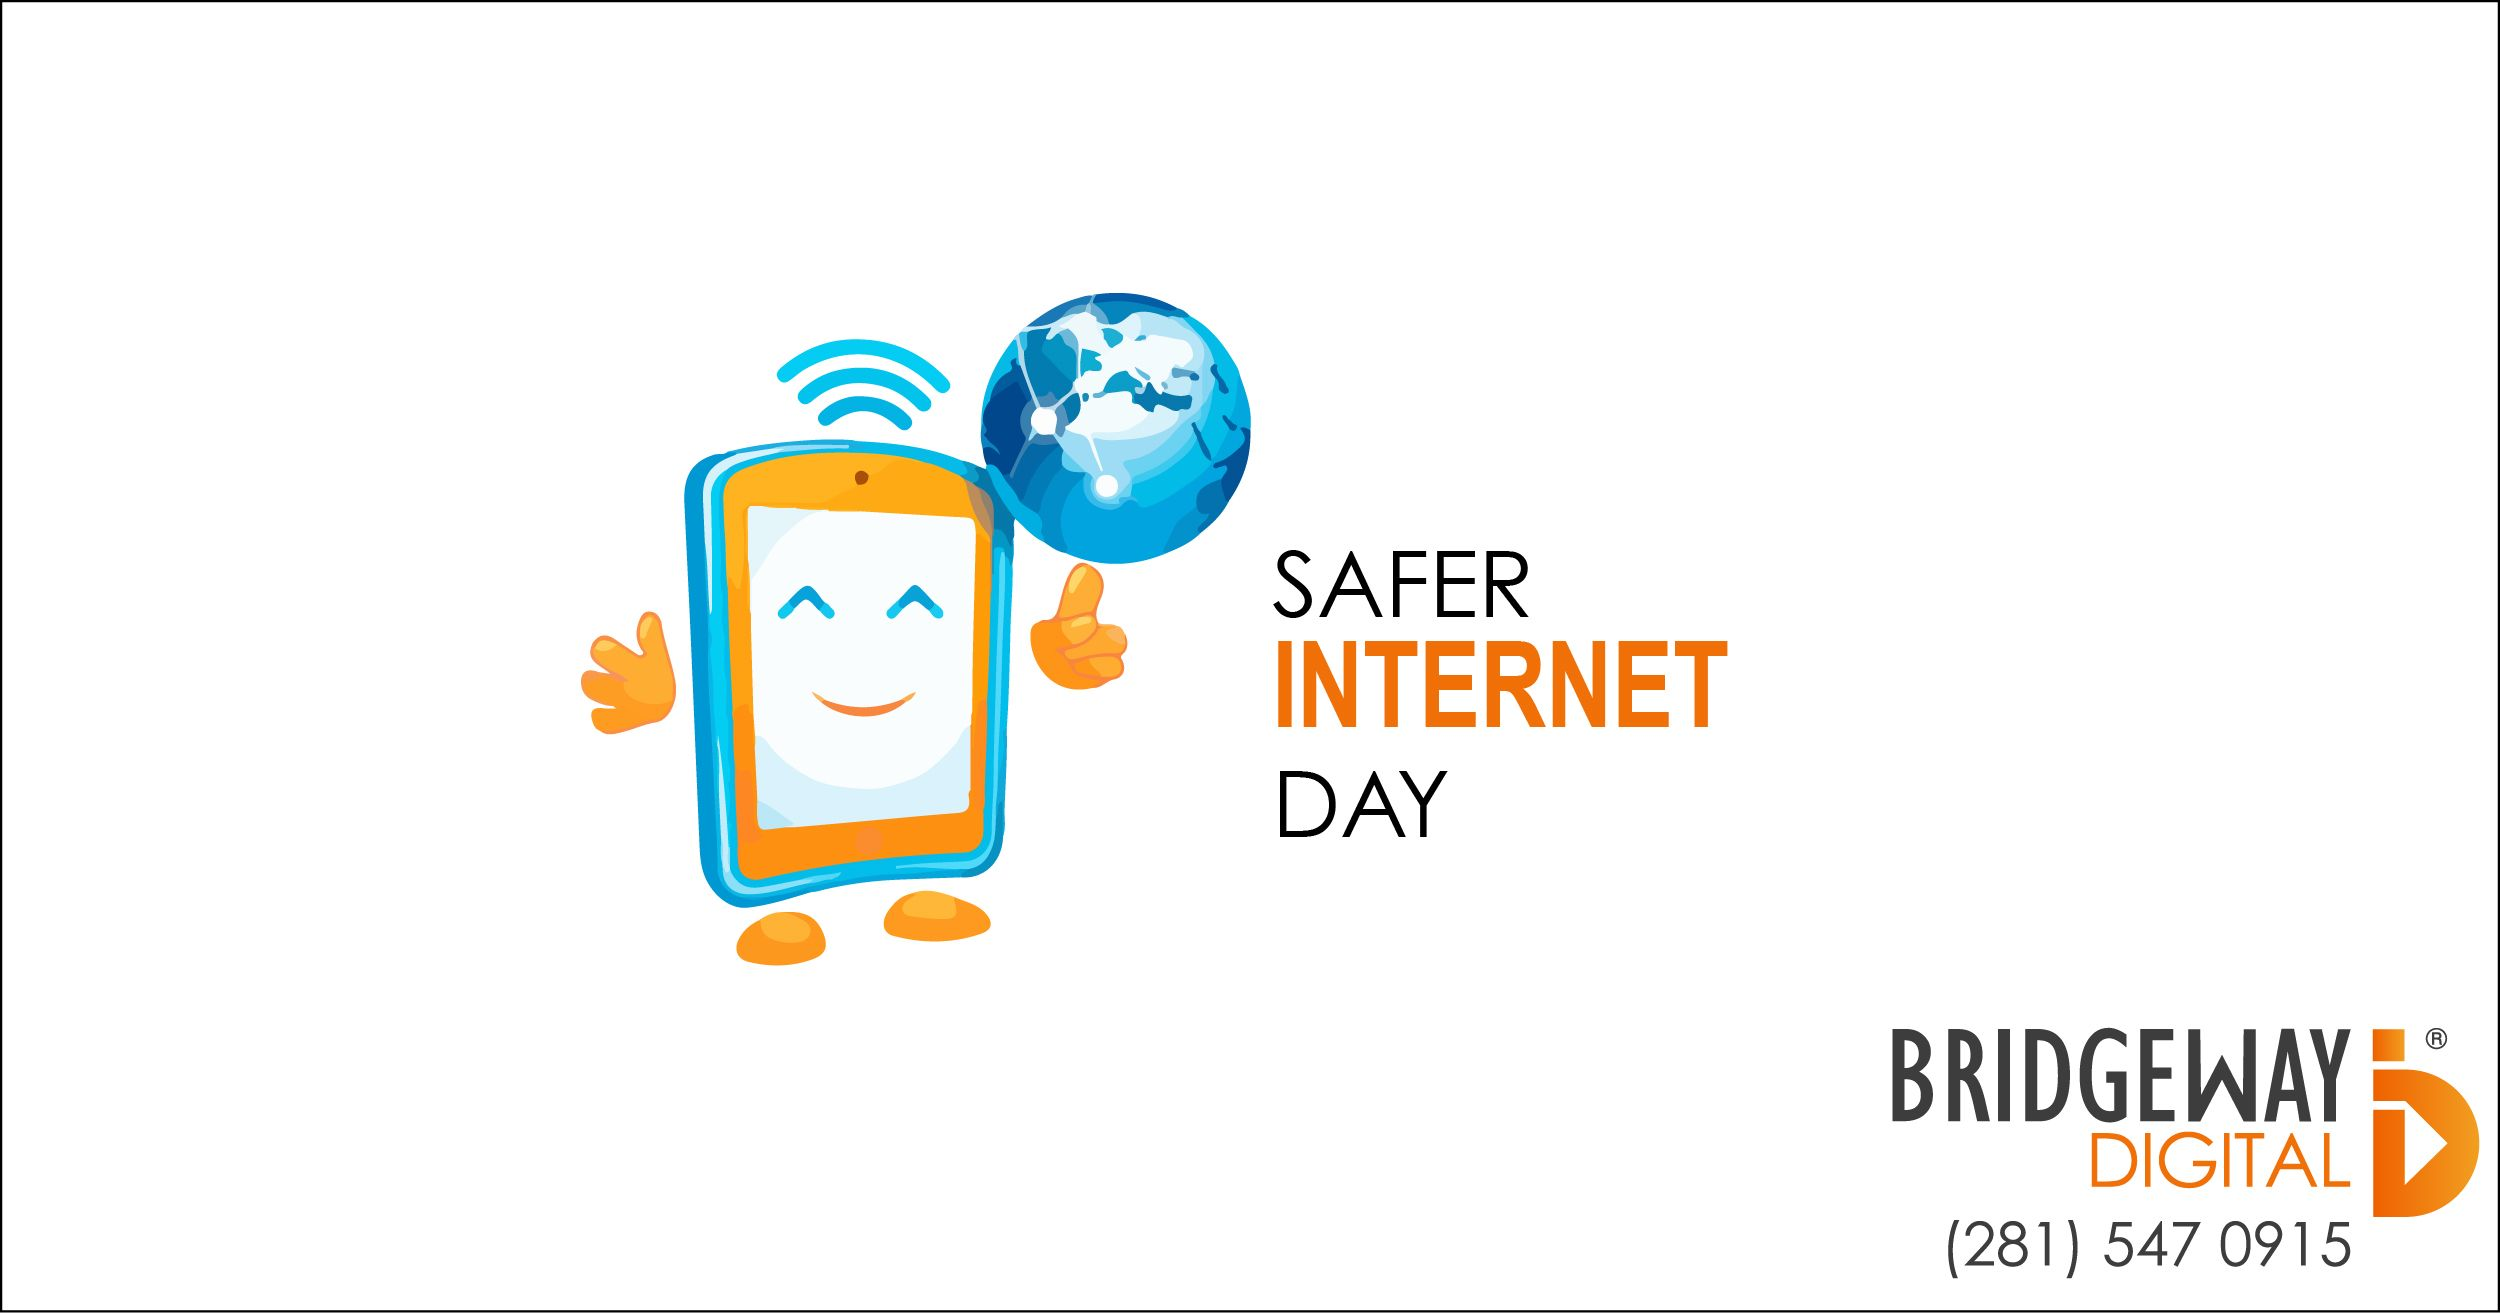 Happy Saferinternetday On Sid2020 Join Us Together We Can Effect The Positi In 2020 Digital Advertising Agency Digital Advertising Digital Marketing Company